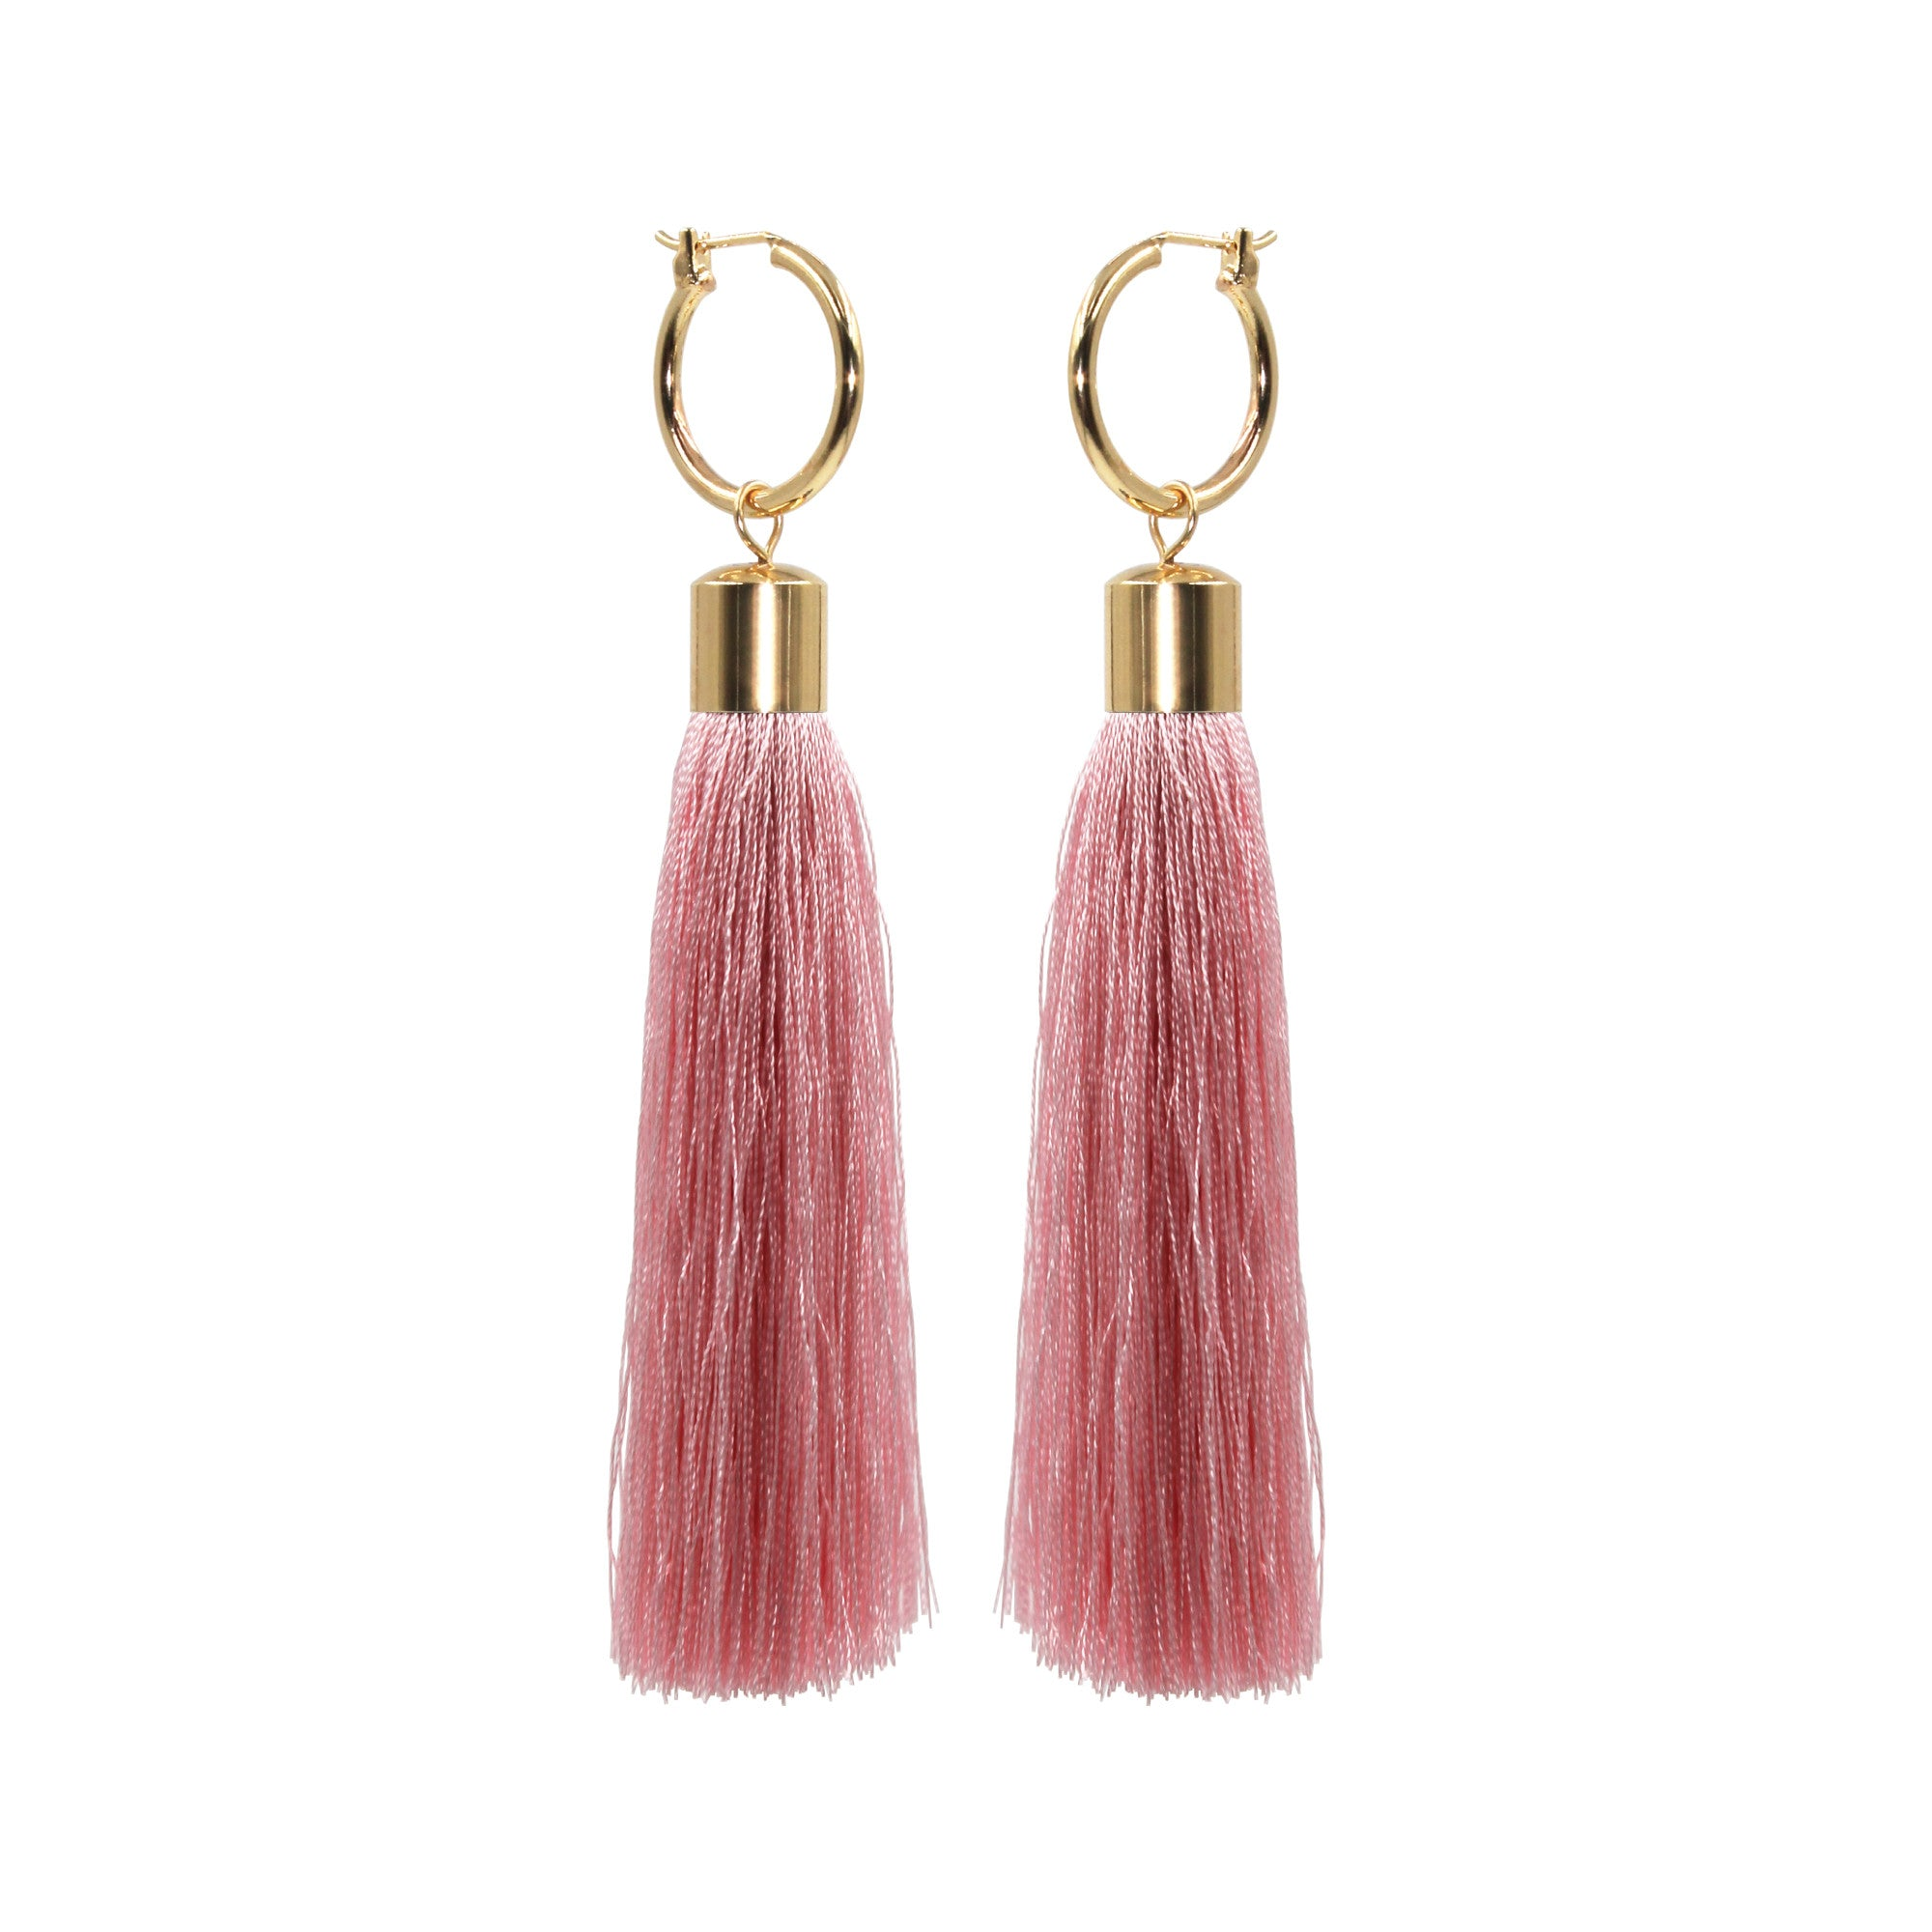 tonle natural products waste fashion by trade tassel zero fair earrings tonl tassle